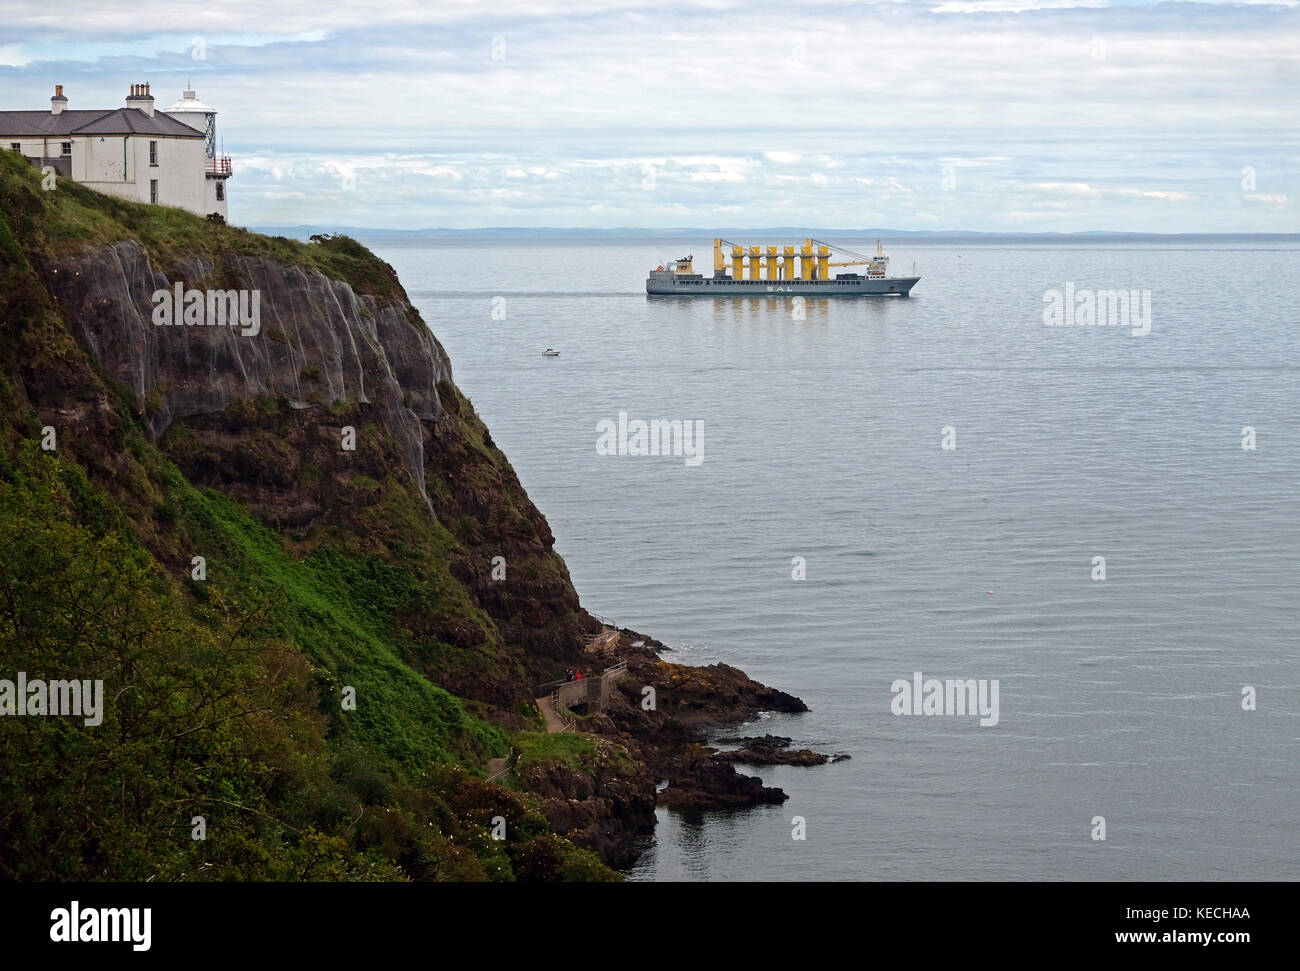 Ship carrying wind turbine transition pieces for fabrication in Belfast. - Stock Image